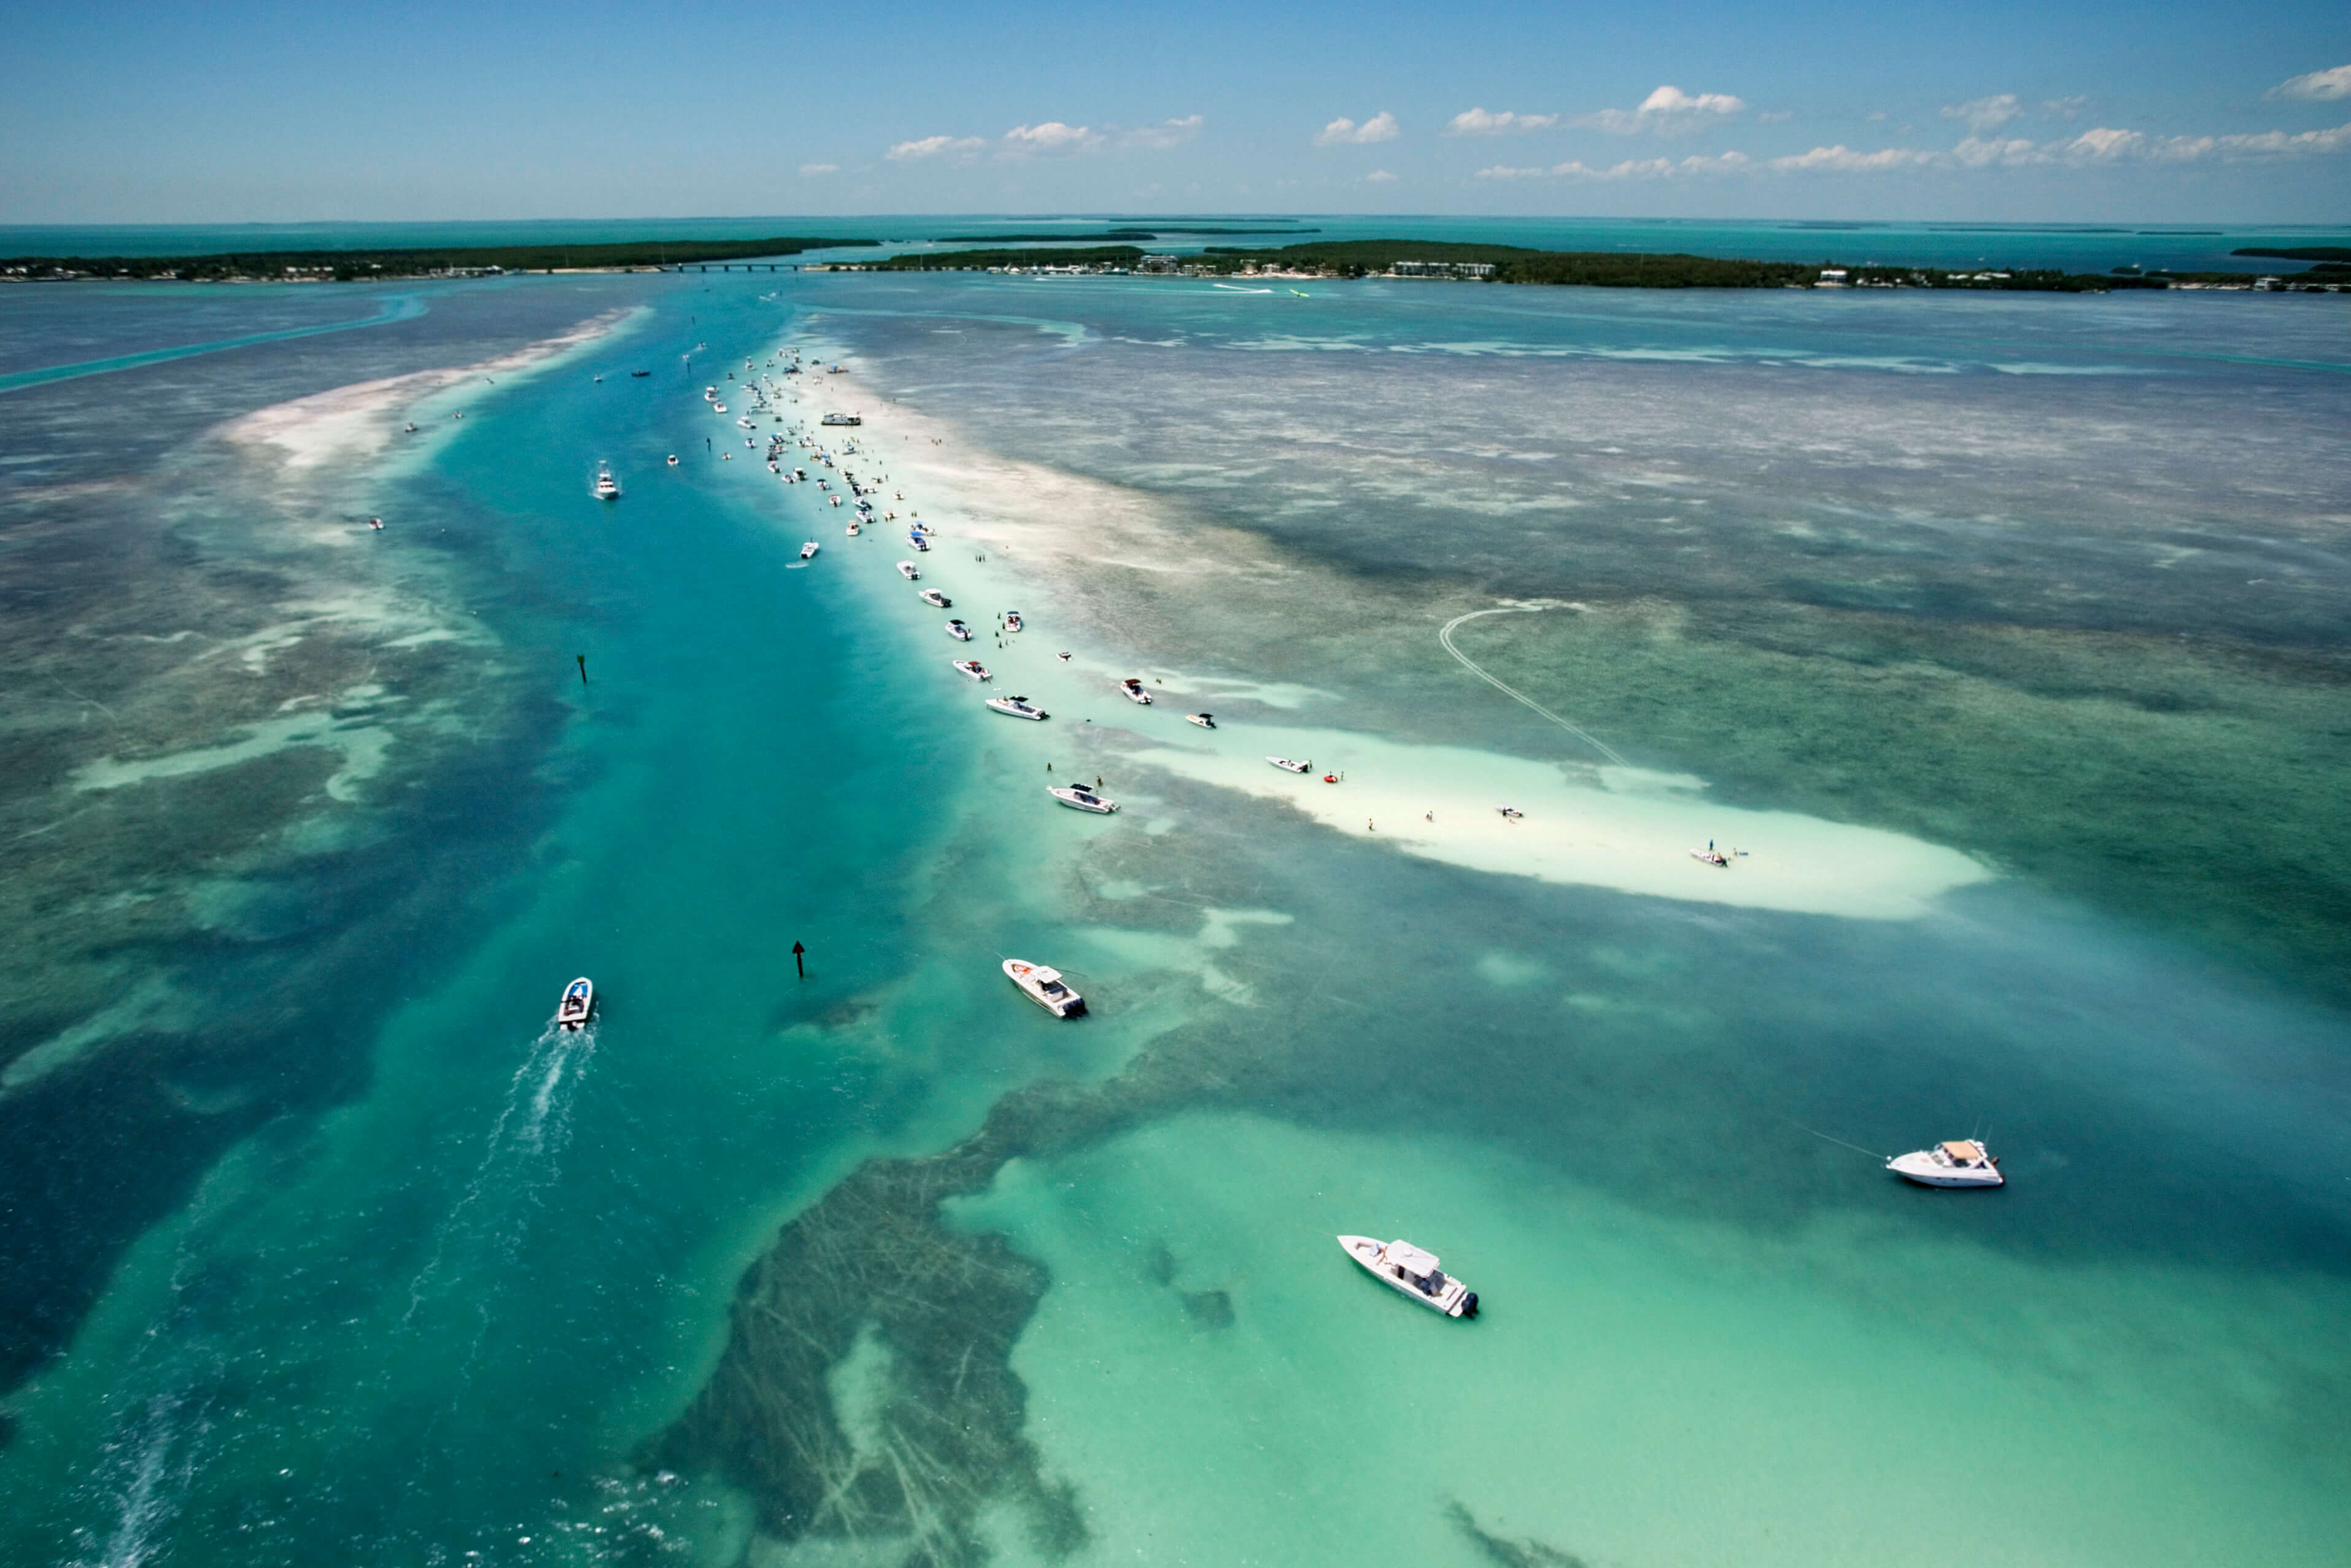 Los Cayos de Florida - Foto por Thinkstock/Gettyimages